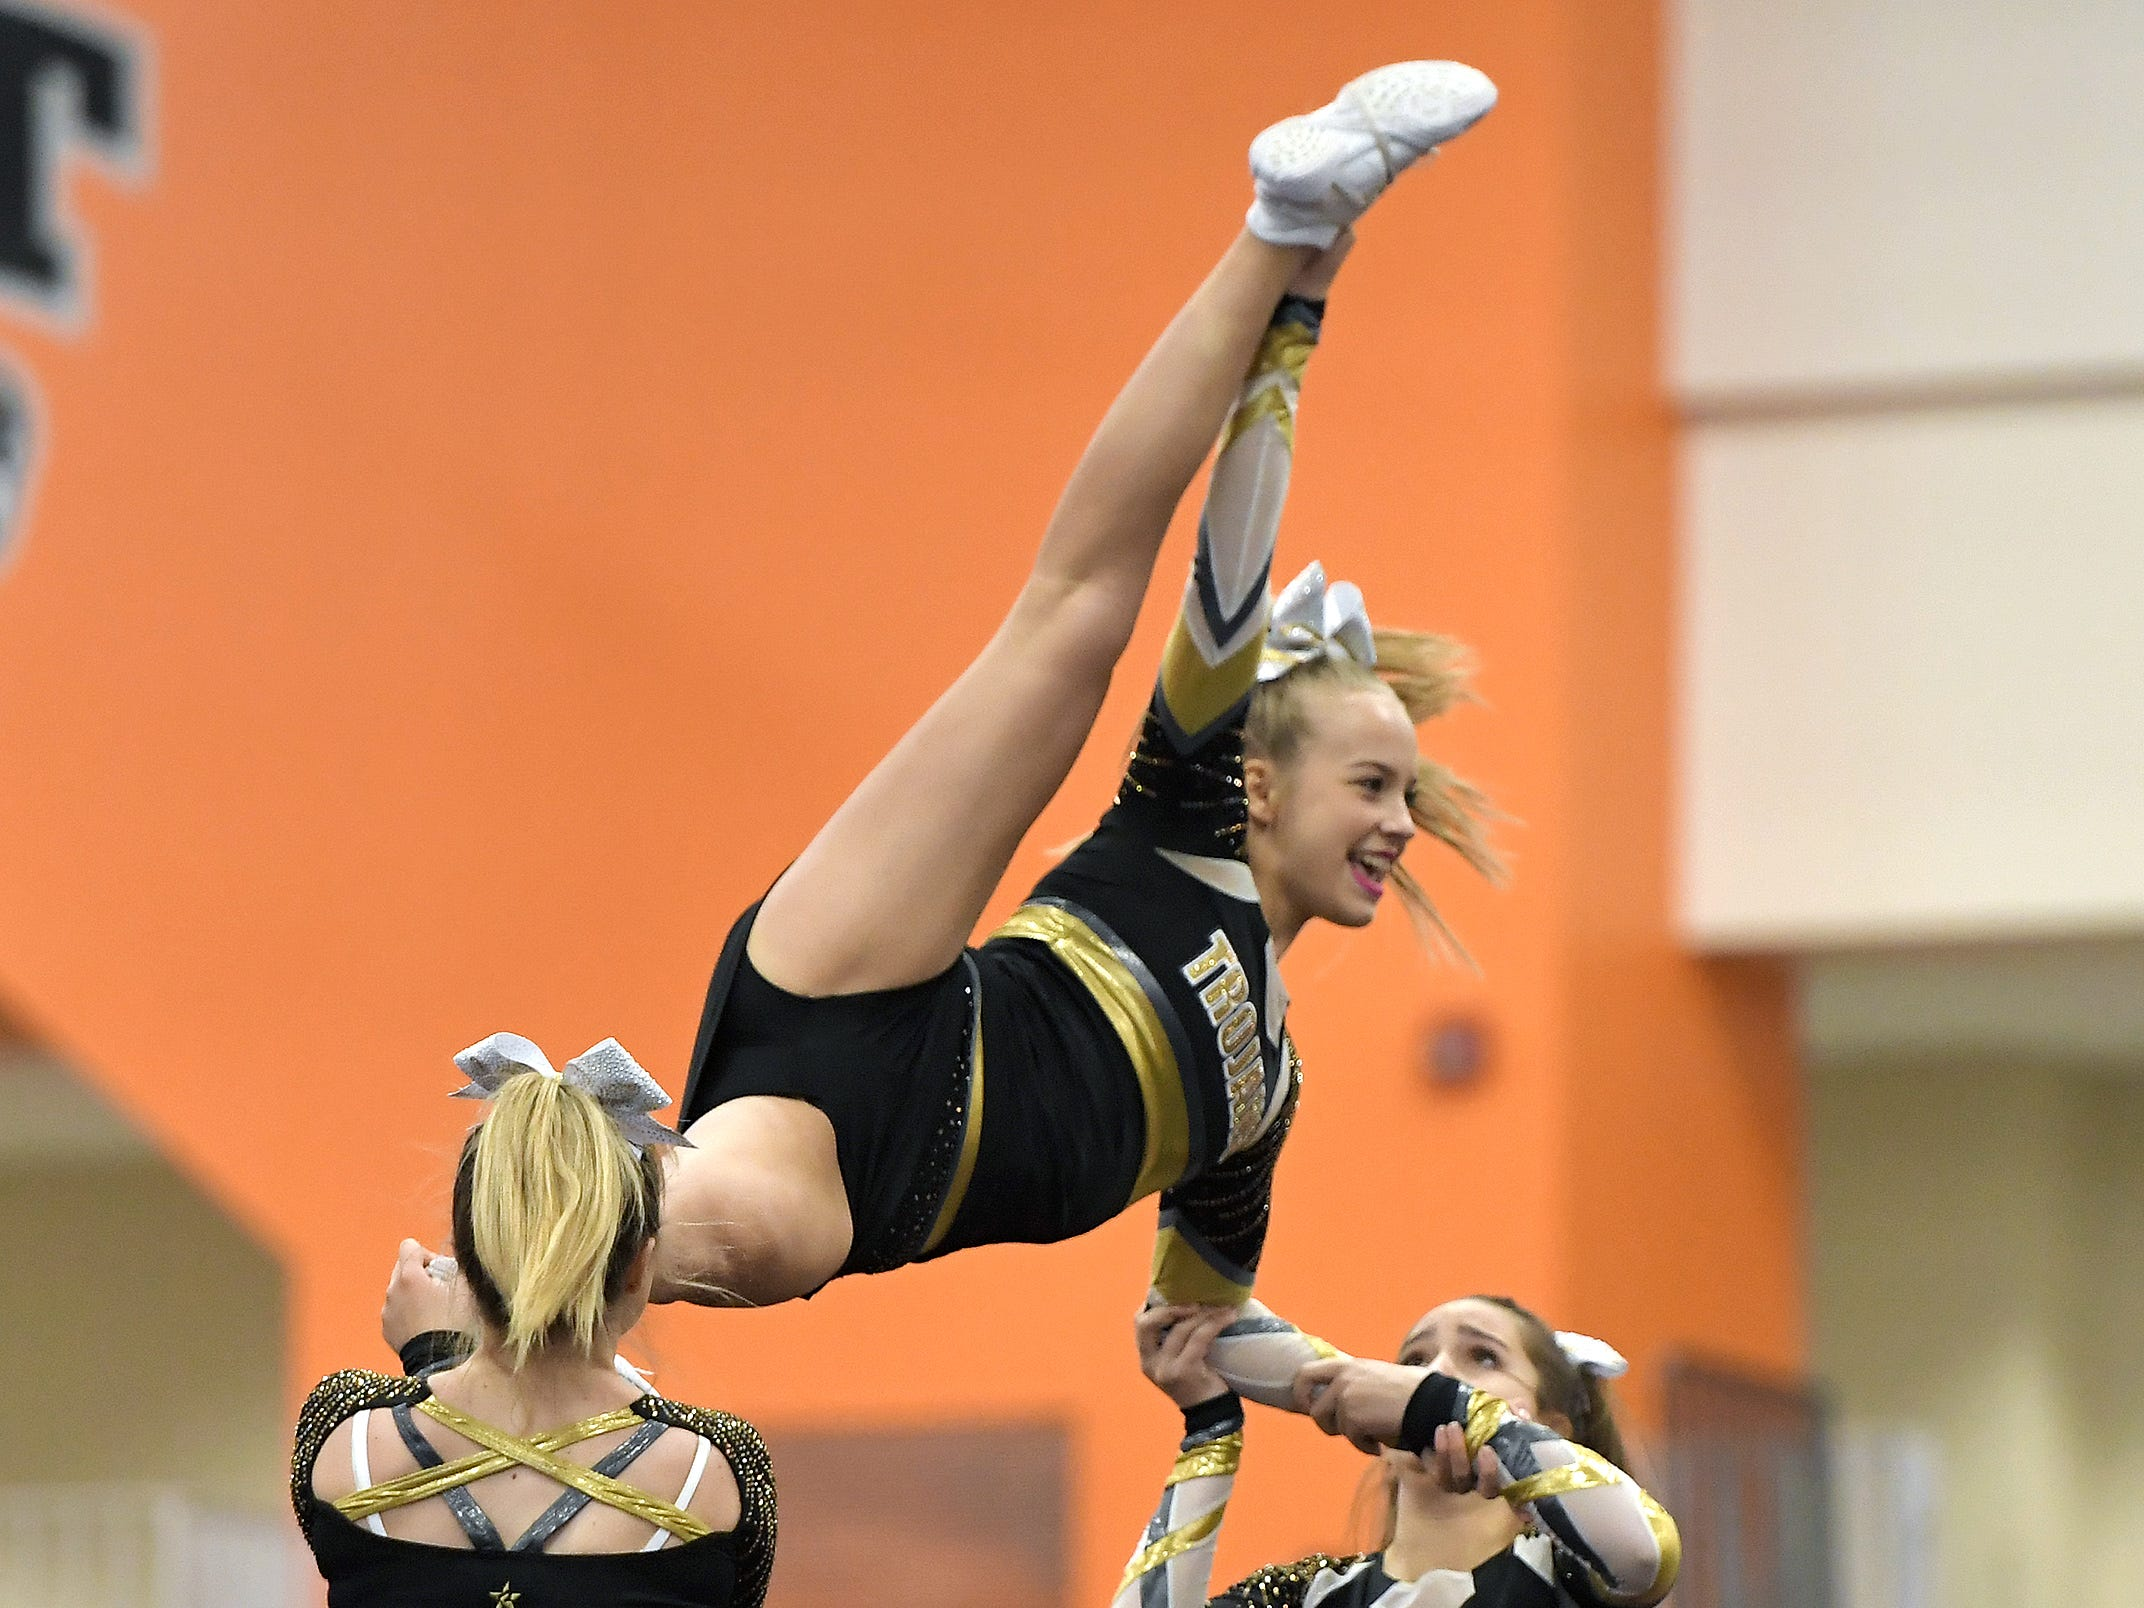 Greece Athena cheerleaders perform their routine during the Section V Fall Cheerleading Championships at RIT, Saturday, Oct. 27, 2018.